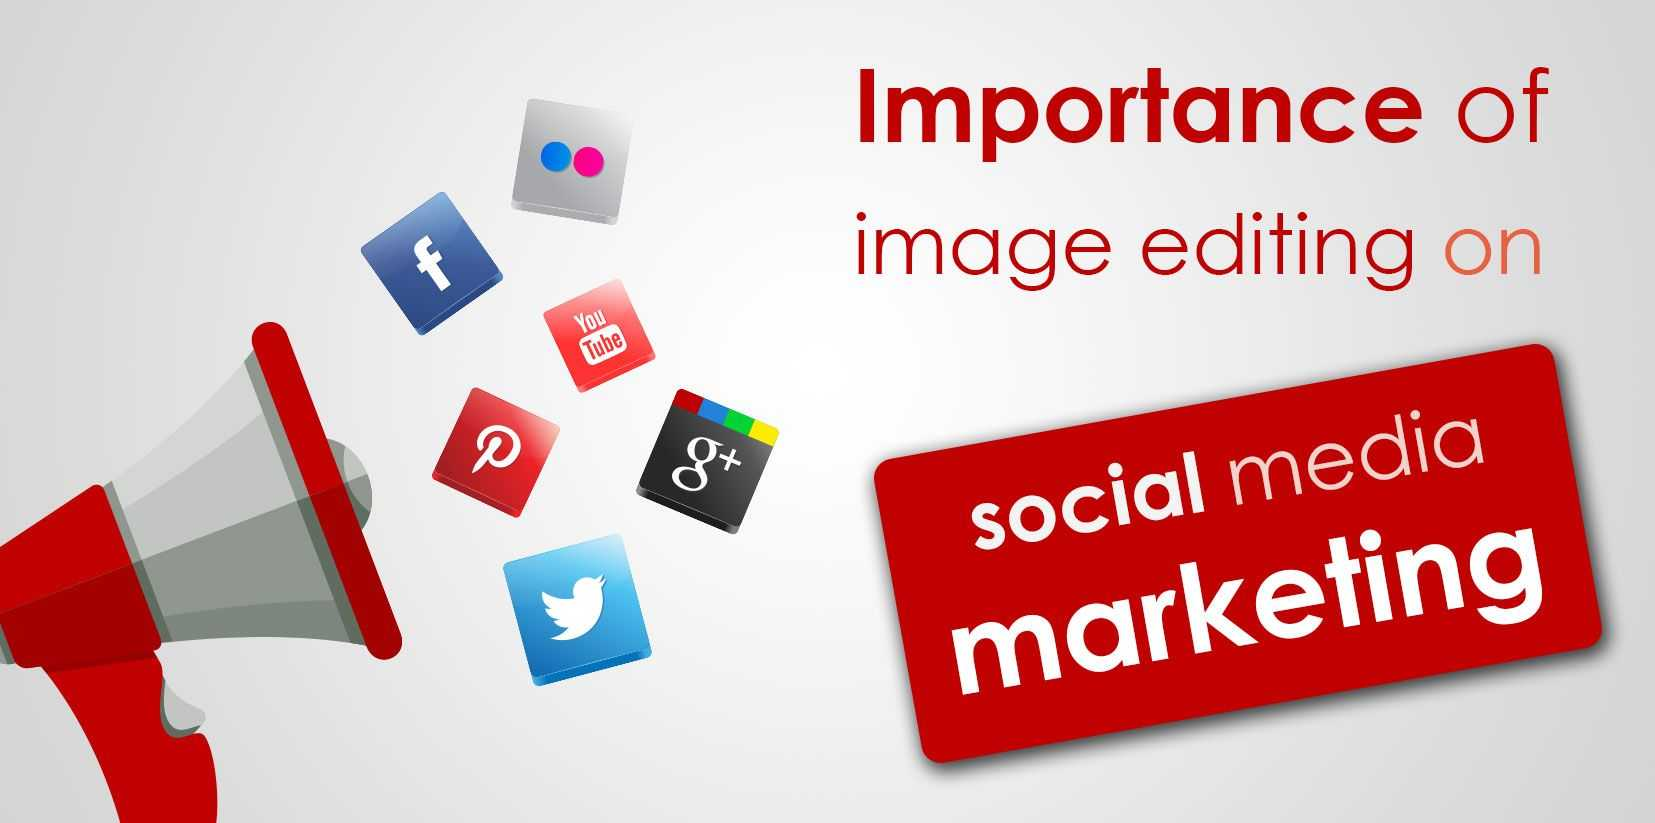 Importance-of-image-editing-on-social-media-marketing